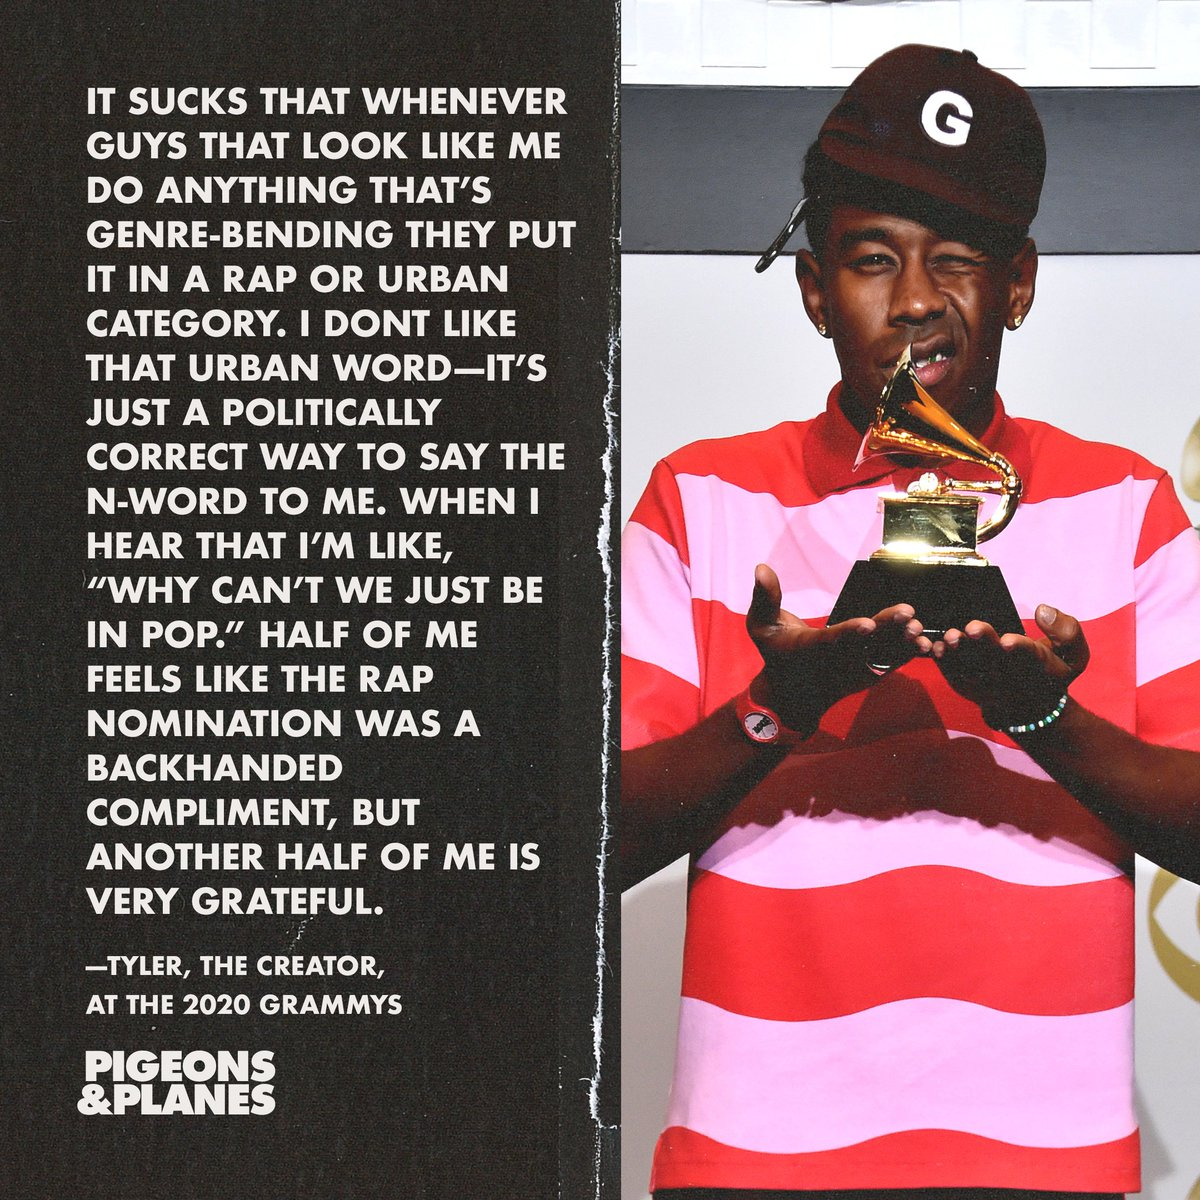 Pigeons Planes On Twitter After Winning Best Rap Album For Igor Tyler The Creator Was Asked About The Grammys Voting Controversy And Spoke On The Way Black Music Is Categorized Https T Co V4mp5qre6h